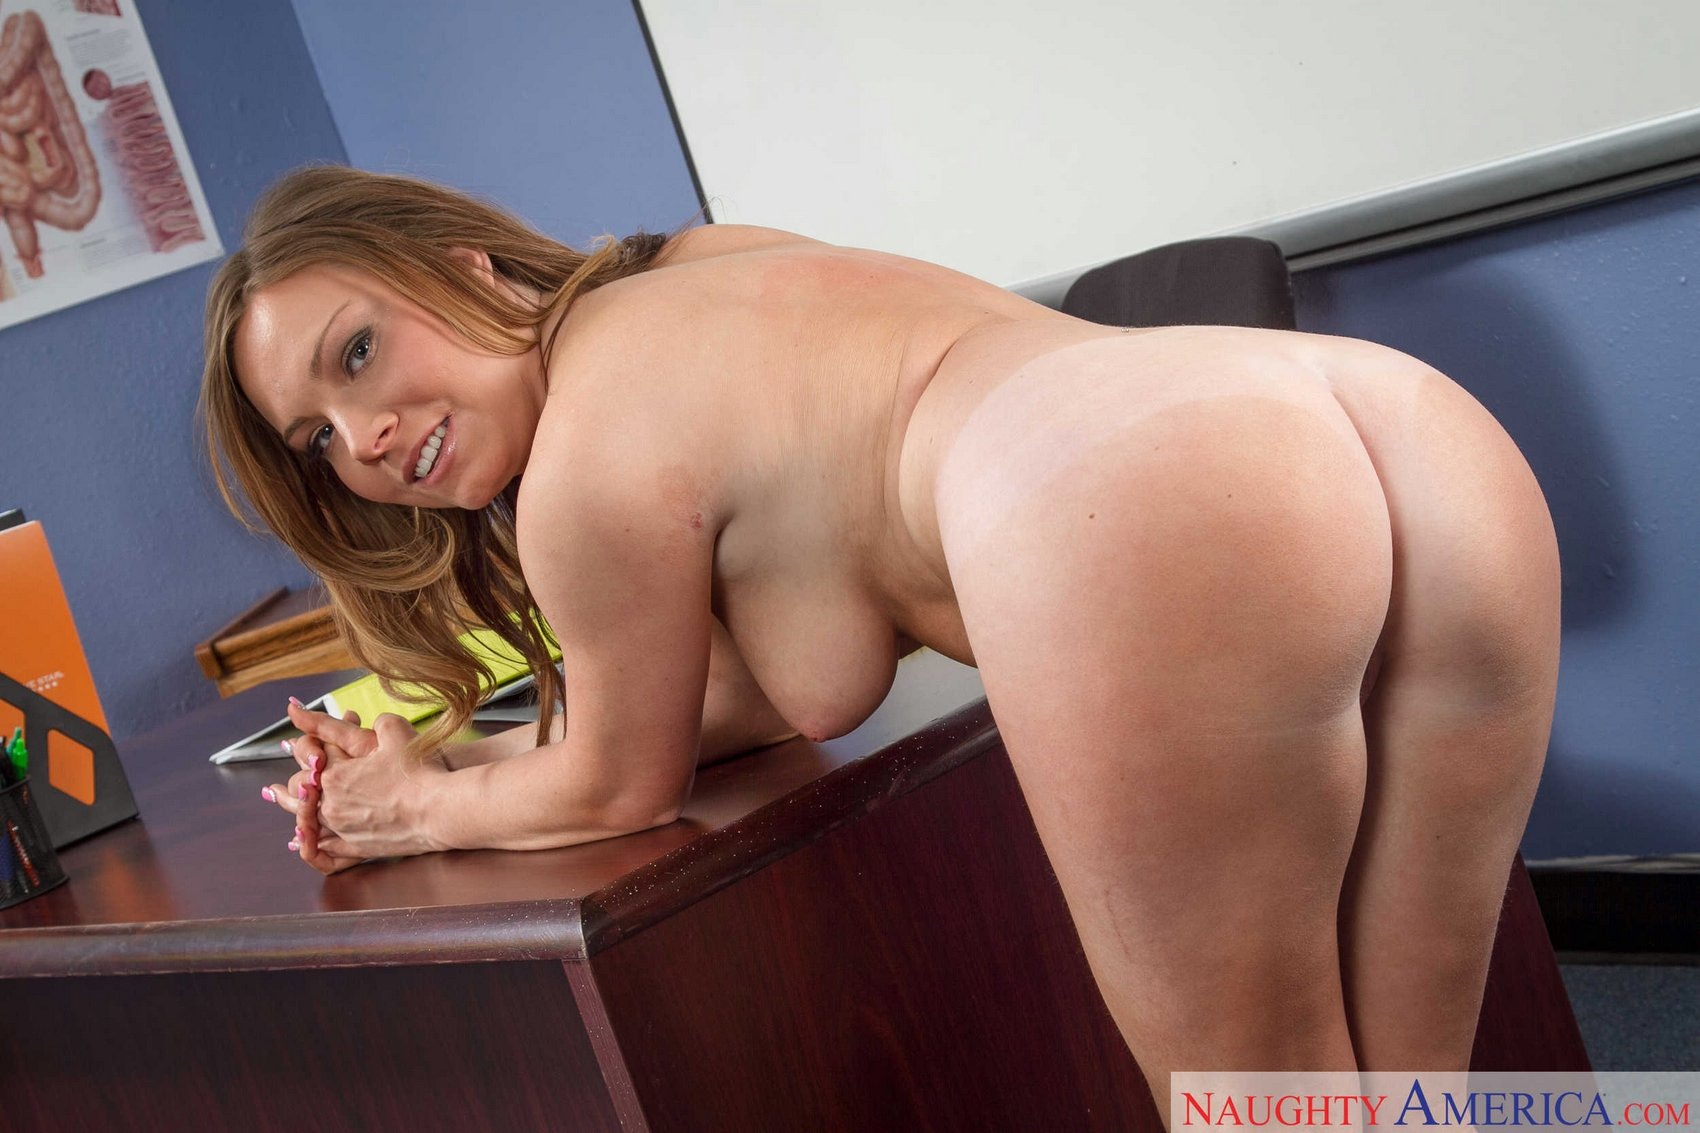 Tiff Bannister stripping and posing in the classroom.